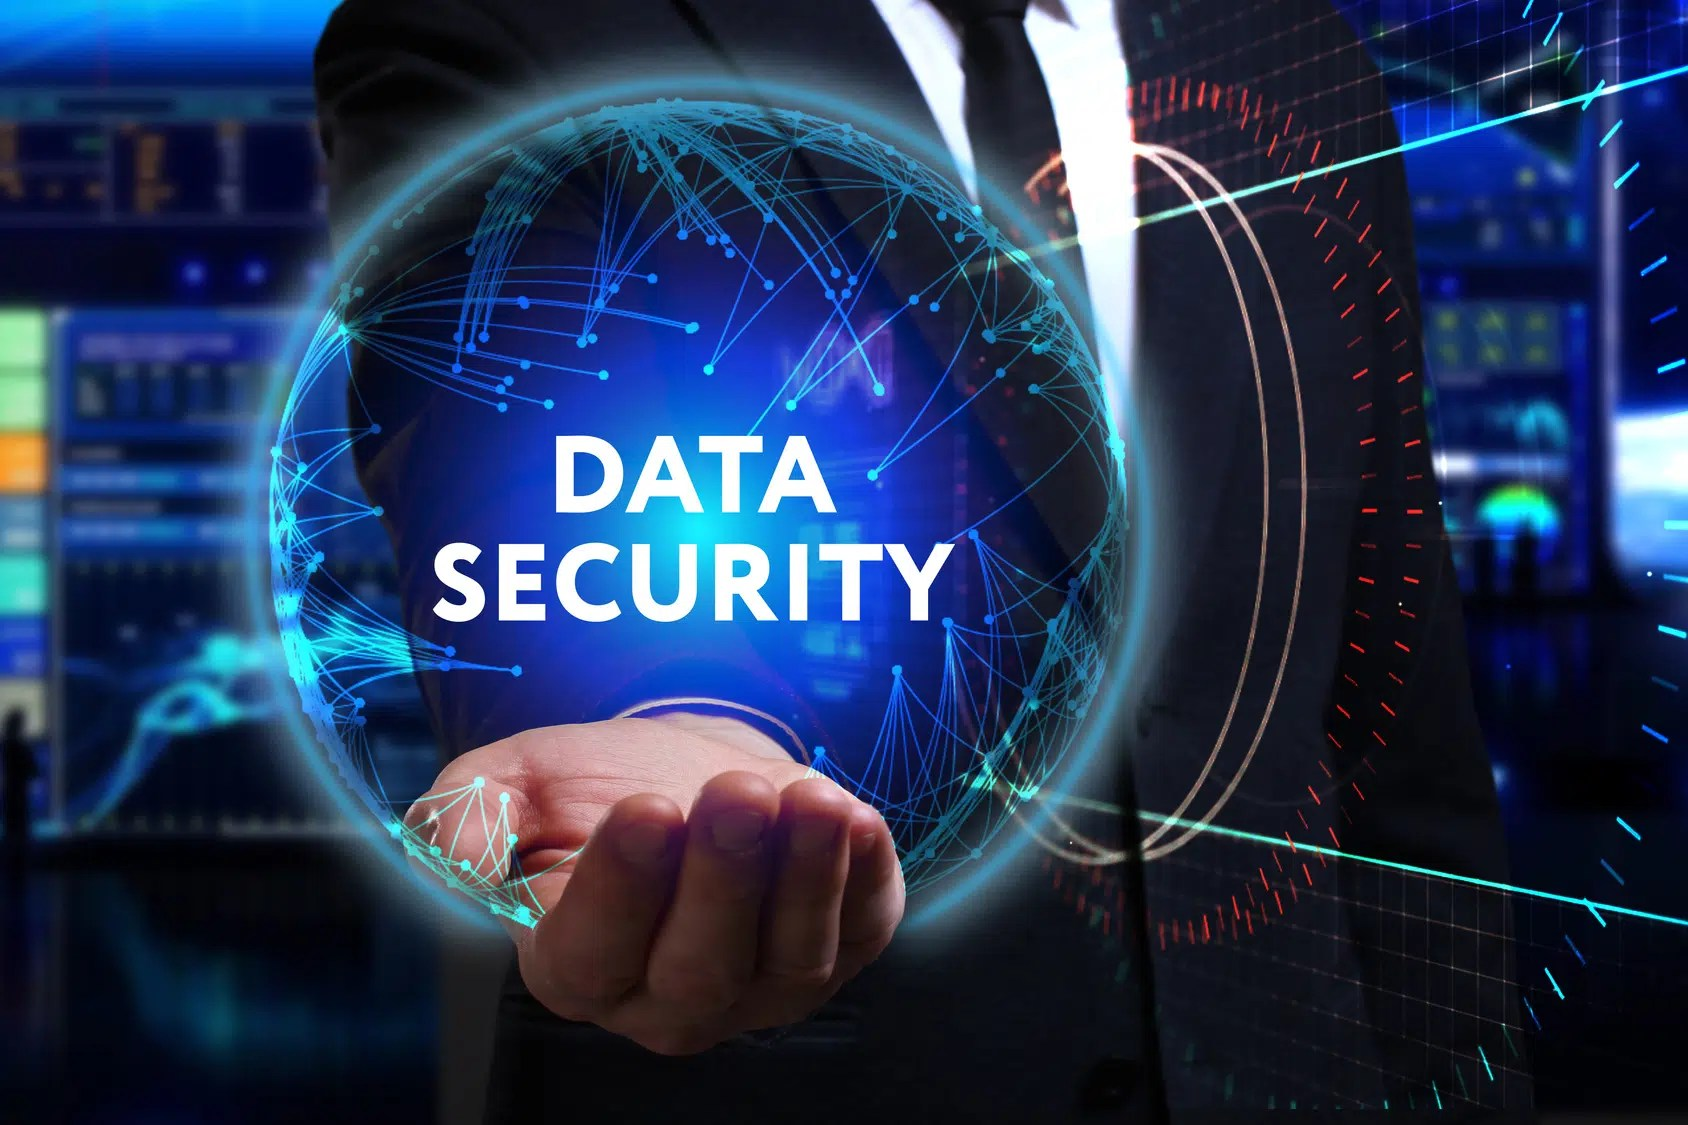 10 Data Security Management Tips to Prevent a Data Breach  Revision Legal